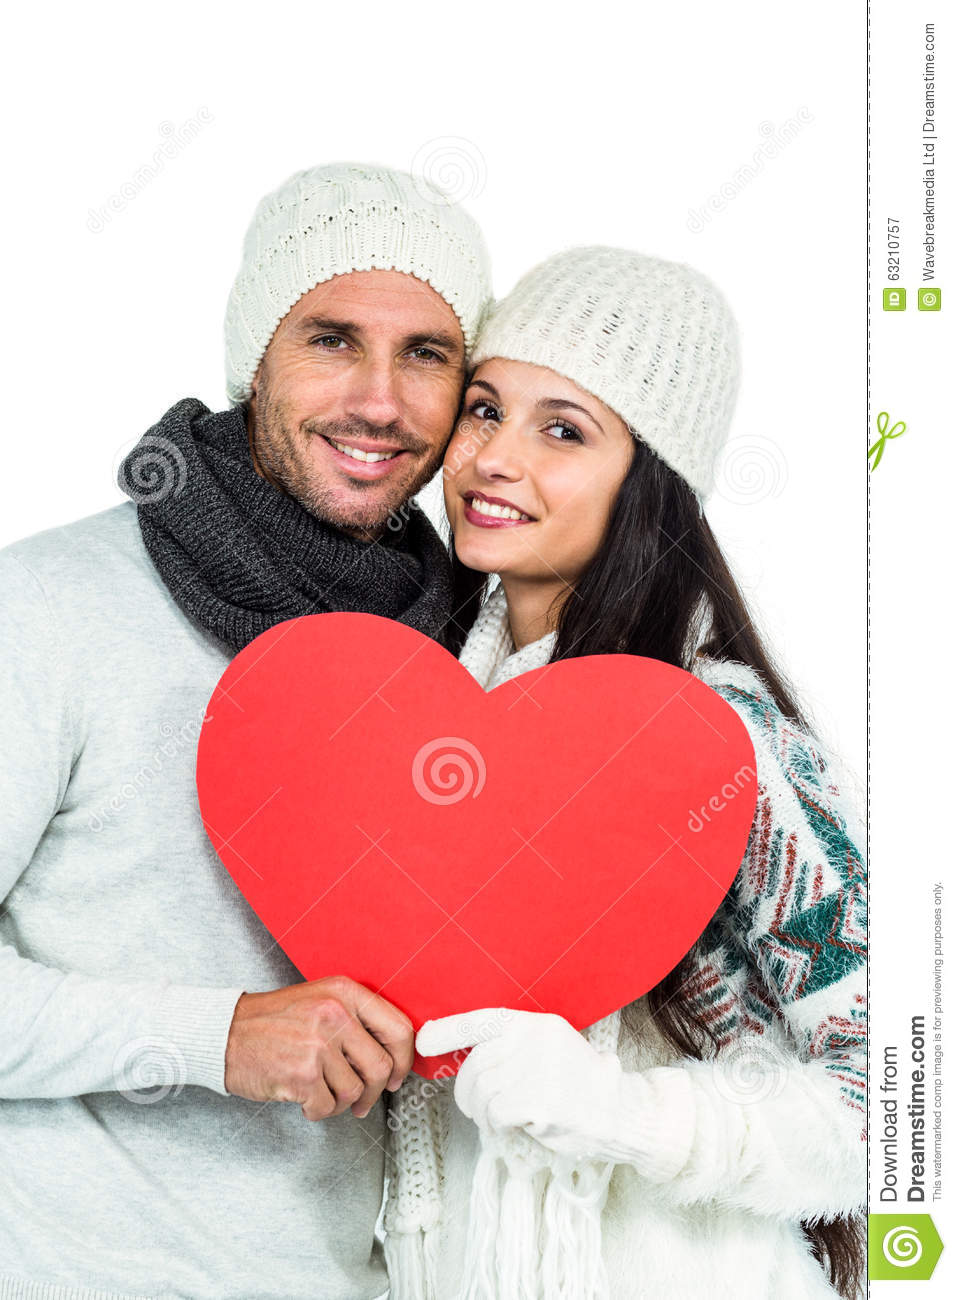 e1a4b89faf1 Smiling Couple Holding Paper Heart Stock Image - Image of beauty ...